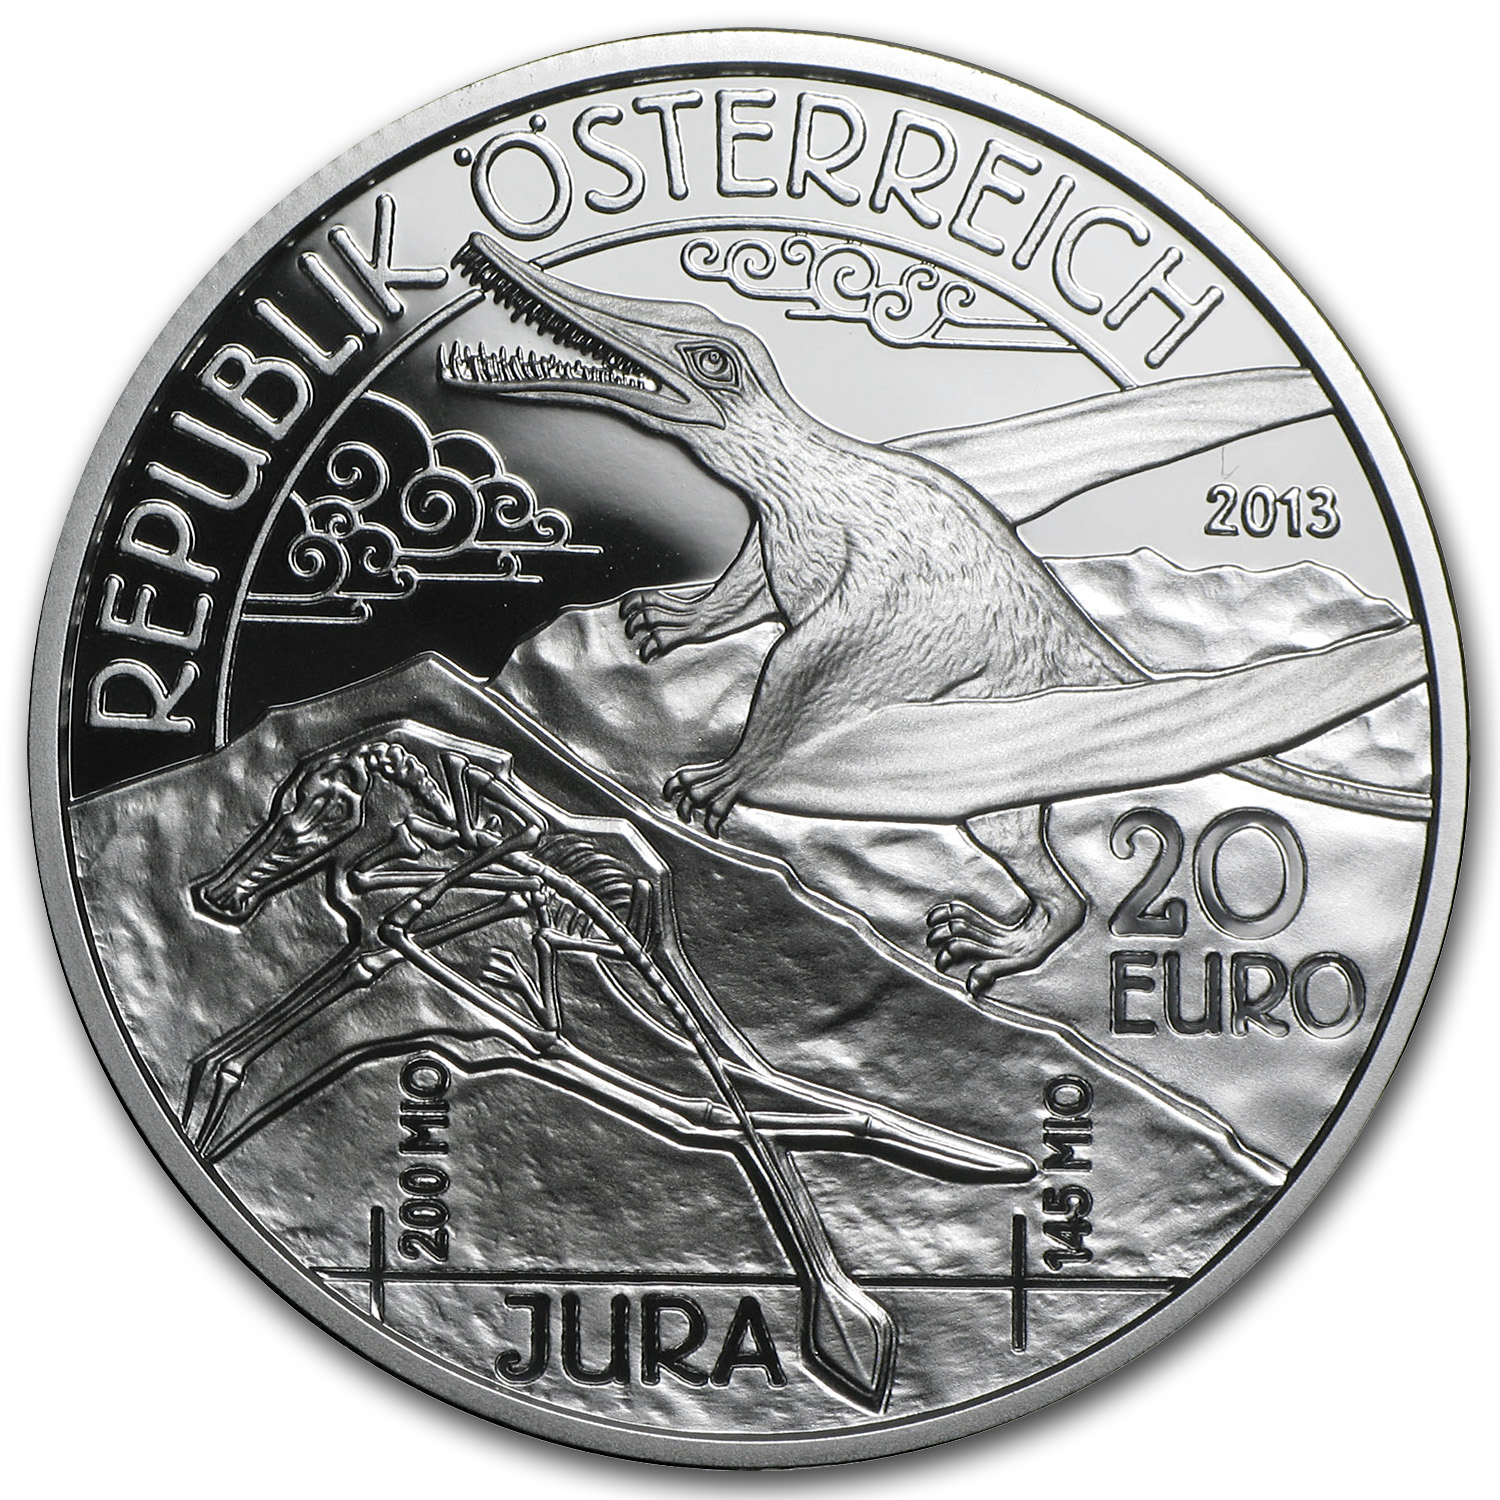 2013 Austria Silver €20 Life in the Air Proof (Jurassic)